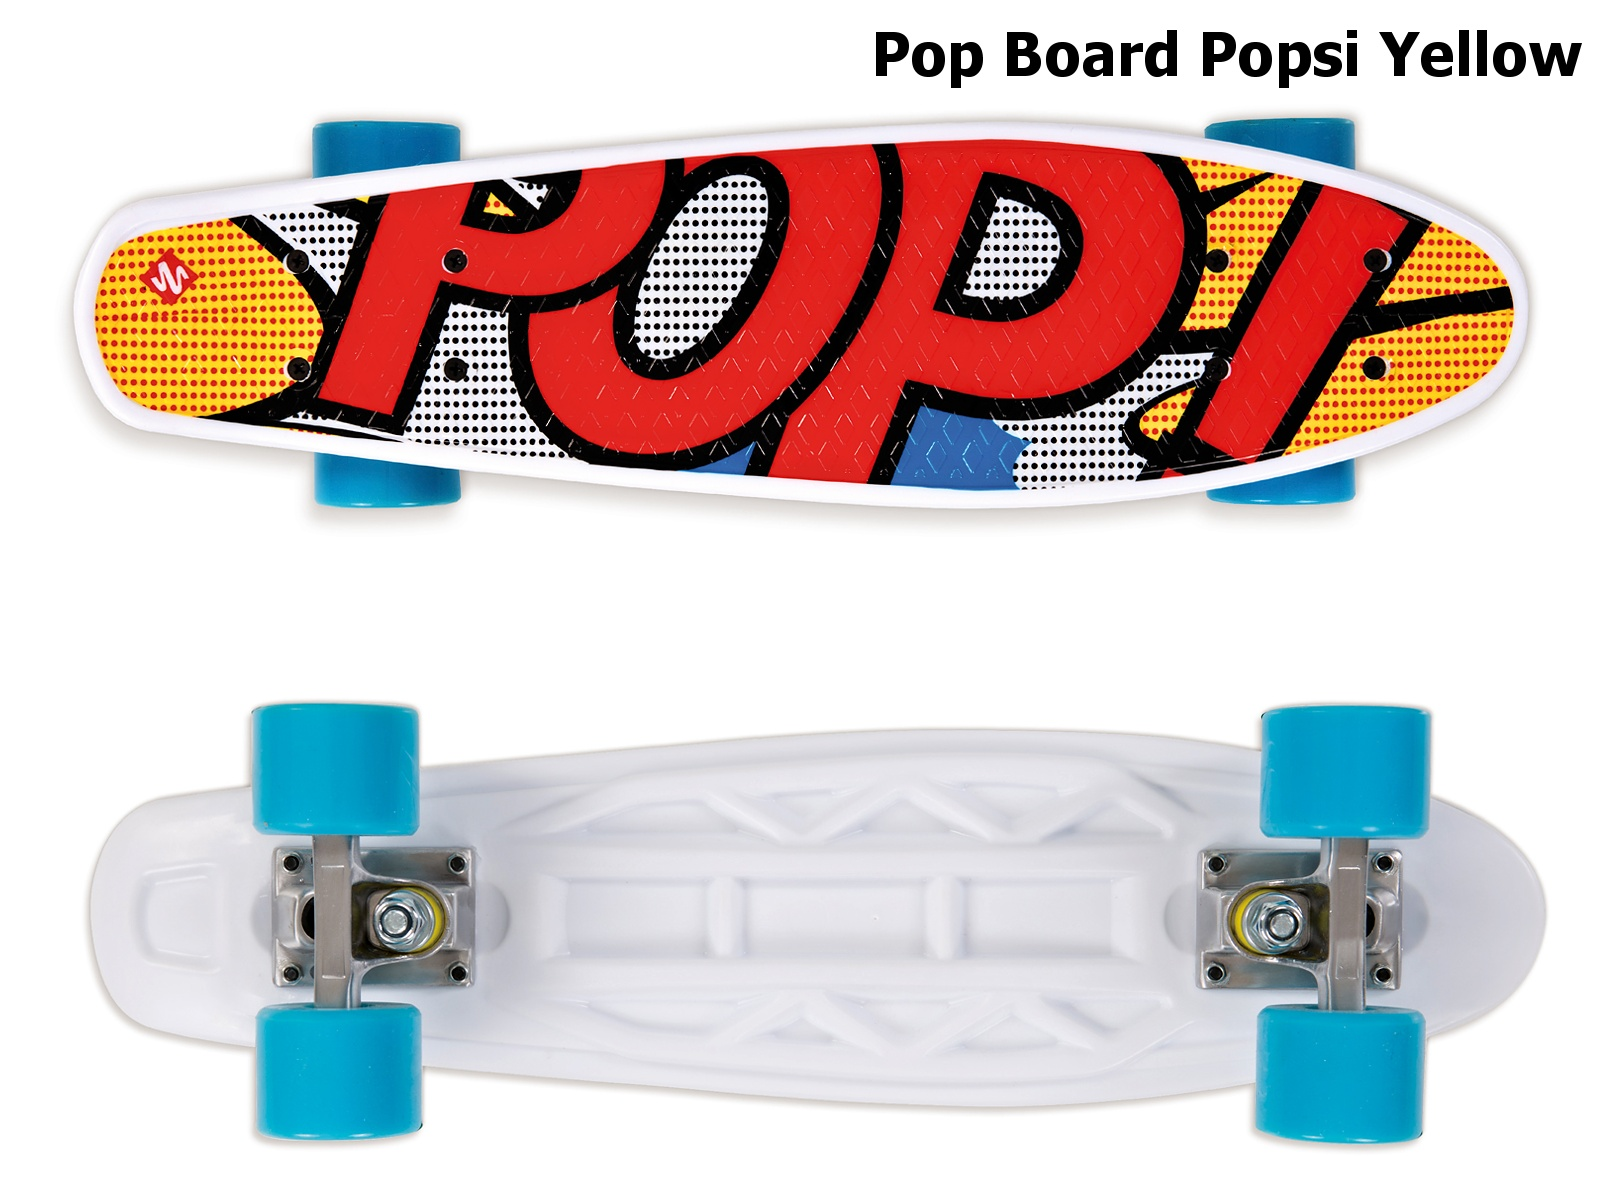 Skateboard STREET SURFING Pop Board Popsi Yellow - žlutý